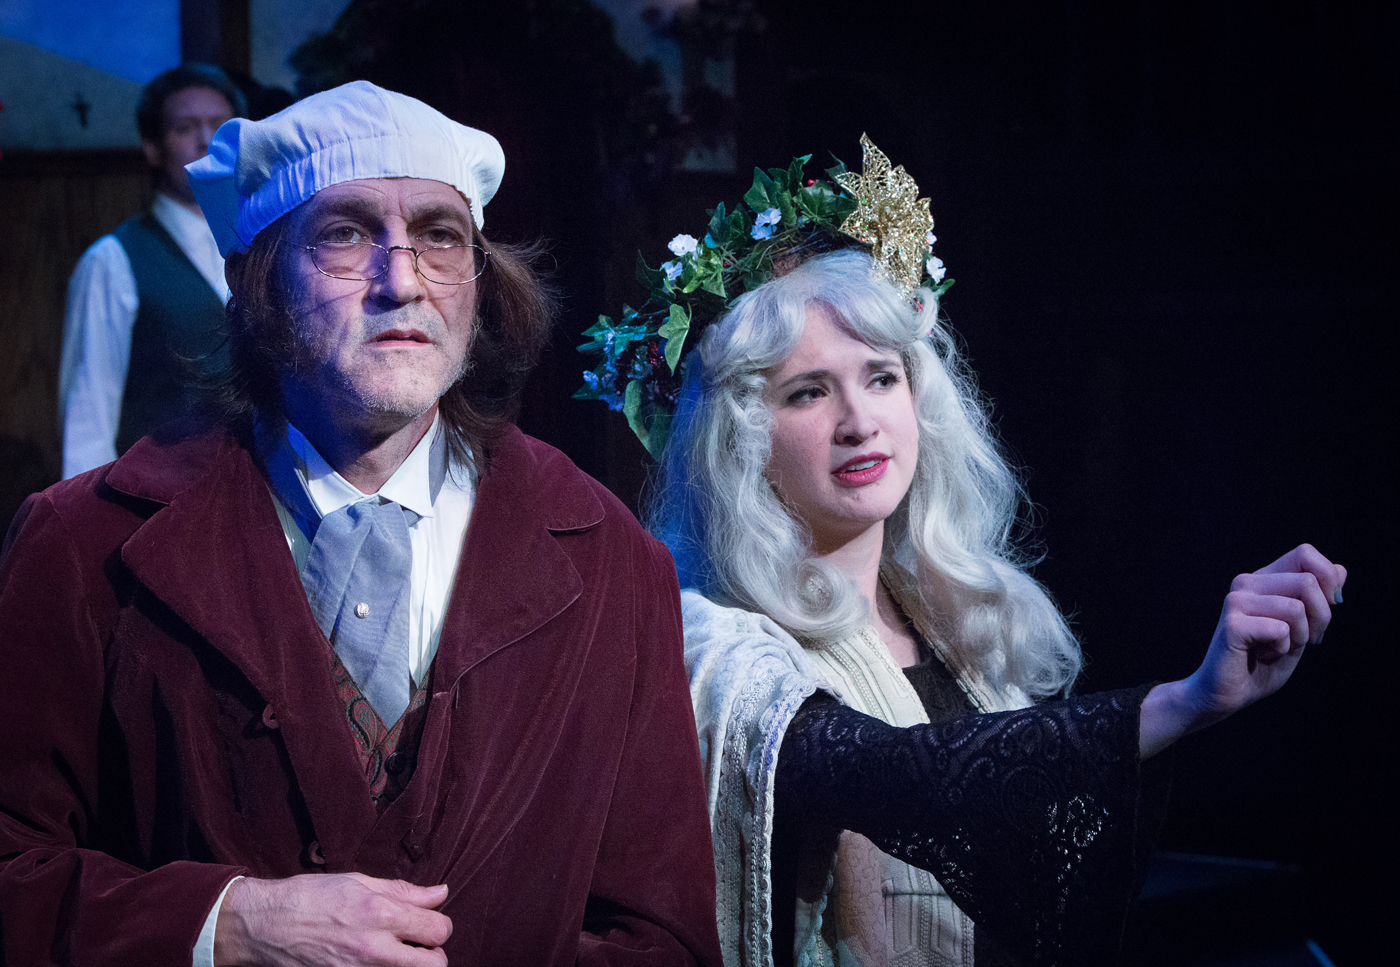 """A Christmas Carol"" at Atlanta Shakespeare Company. Drew Reeves and Gabi Anderson. Photo by Jeff Watkins."